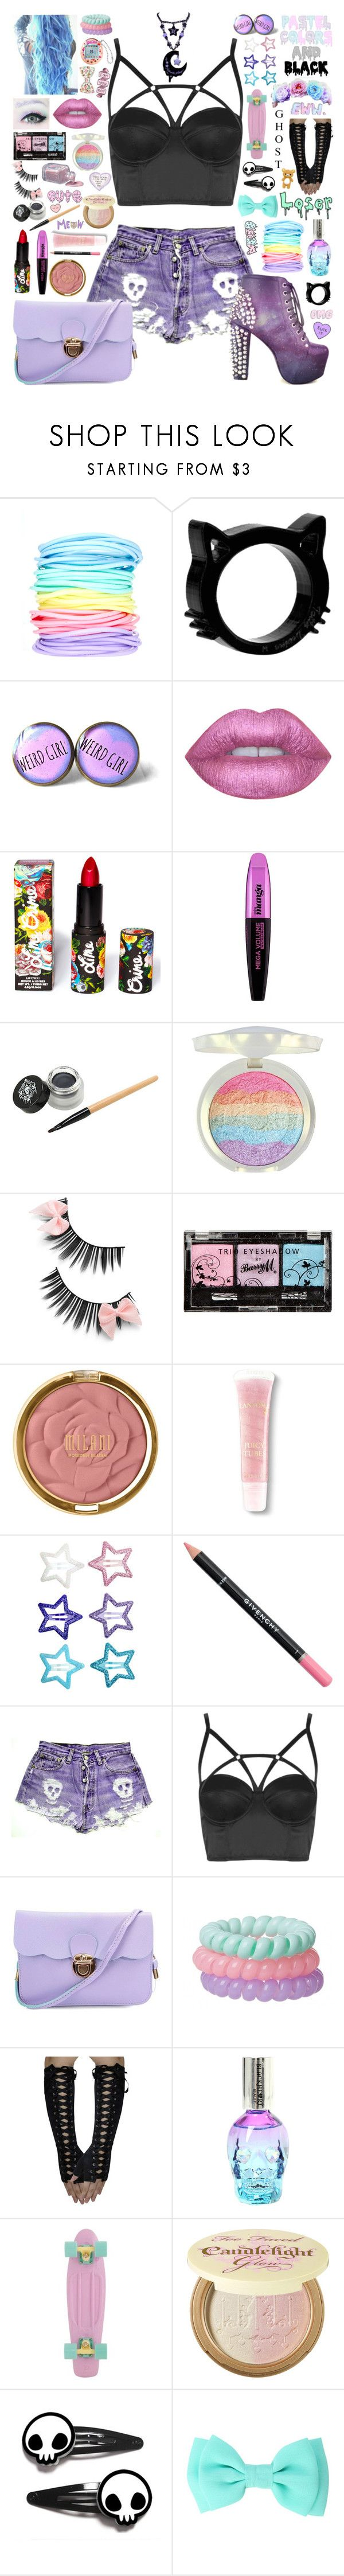 """""""How To Be A Pastel Goth 3"""" by aspiretoinspire22 ❤ liked on Polyvore featuring ASOS, Lime Crime, L'Oréal Paris, River Island, Milani, Lancôme, H&M, Givenchy, Topshop and Too Faced Cosmetics"""